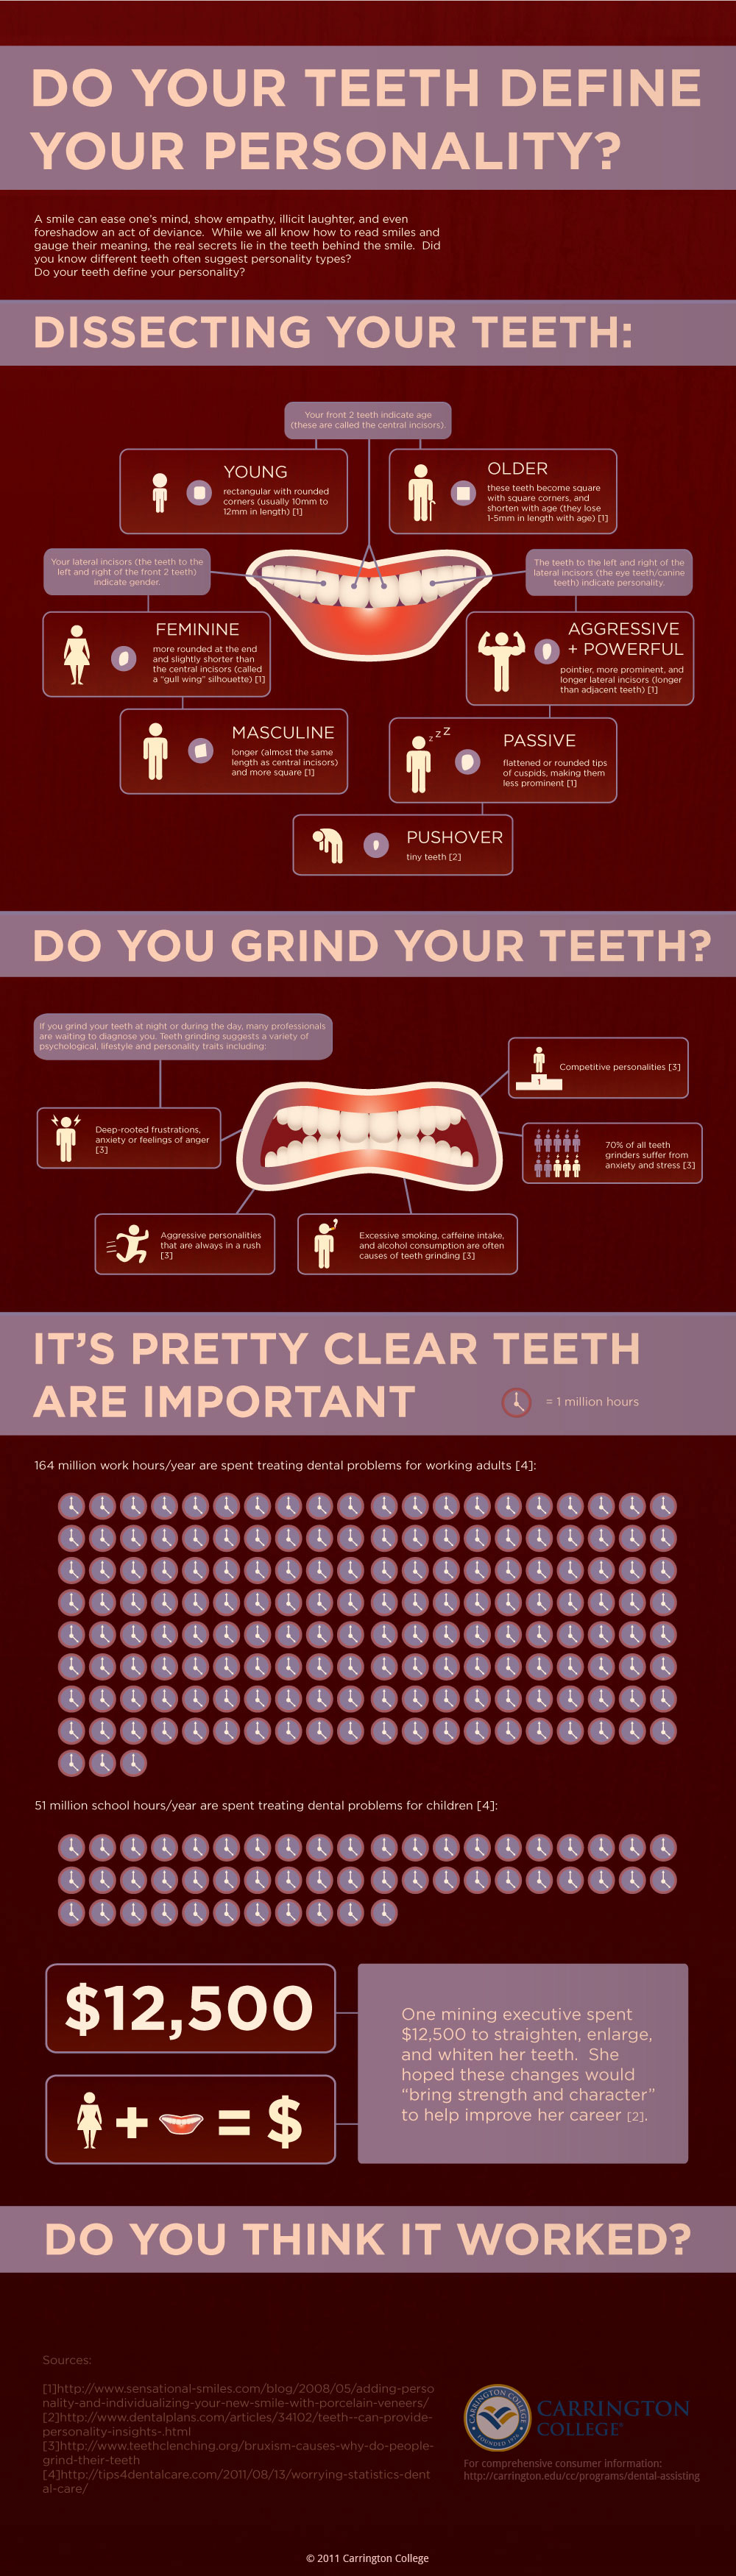 How Teeth Can Determine Your Personality